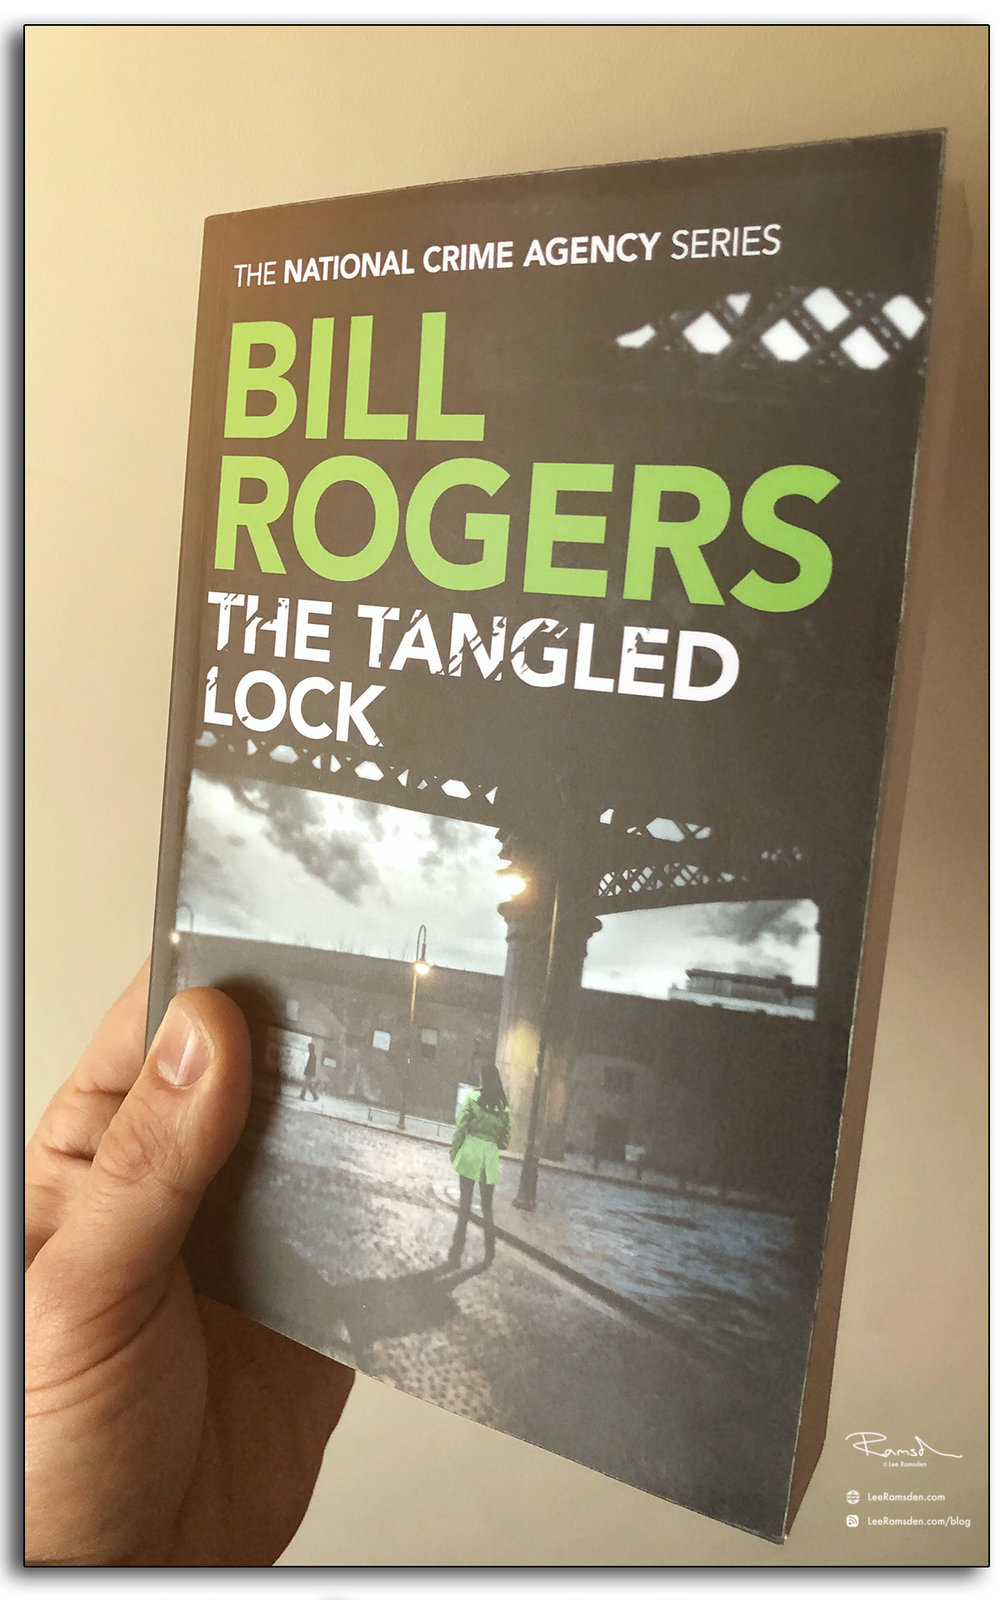 Bill Rogers, the tangled lock, book cover, lee ramsden